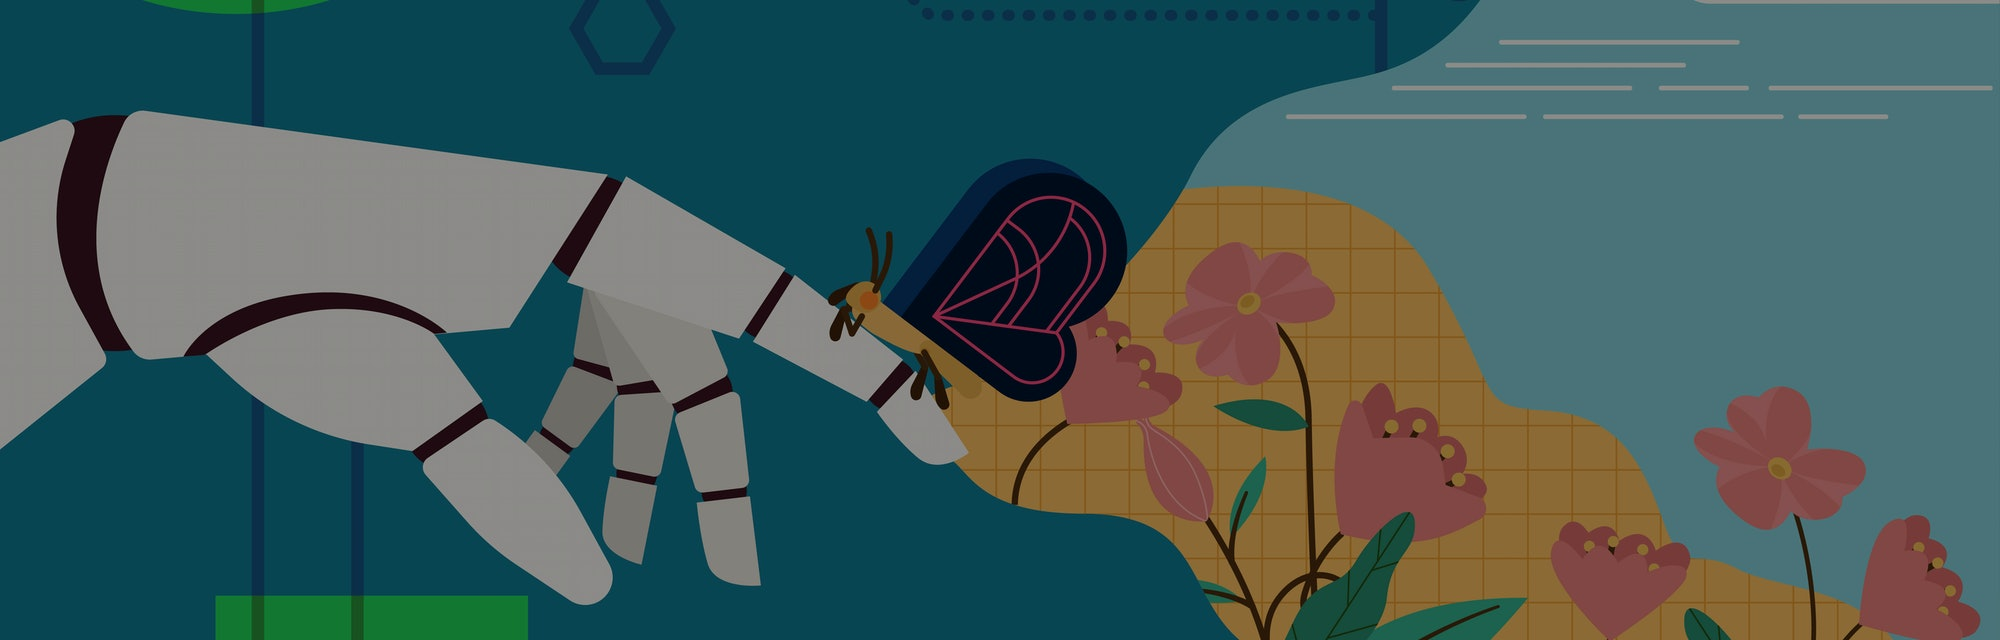 The robotic hand look as like human hand touching the butterfly with natural background, When high Technology meet natural concept, futurism concept, vector illustration in flat style